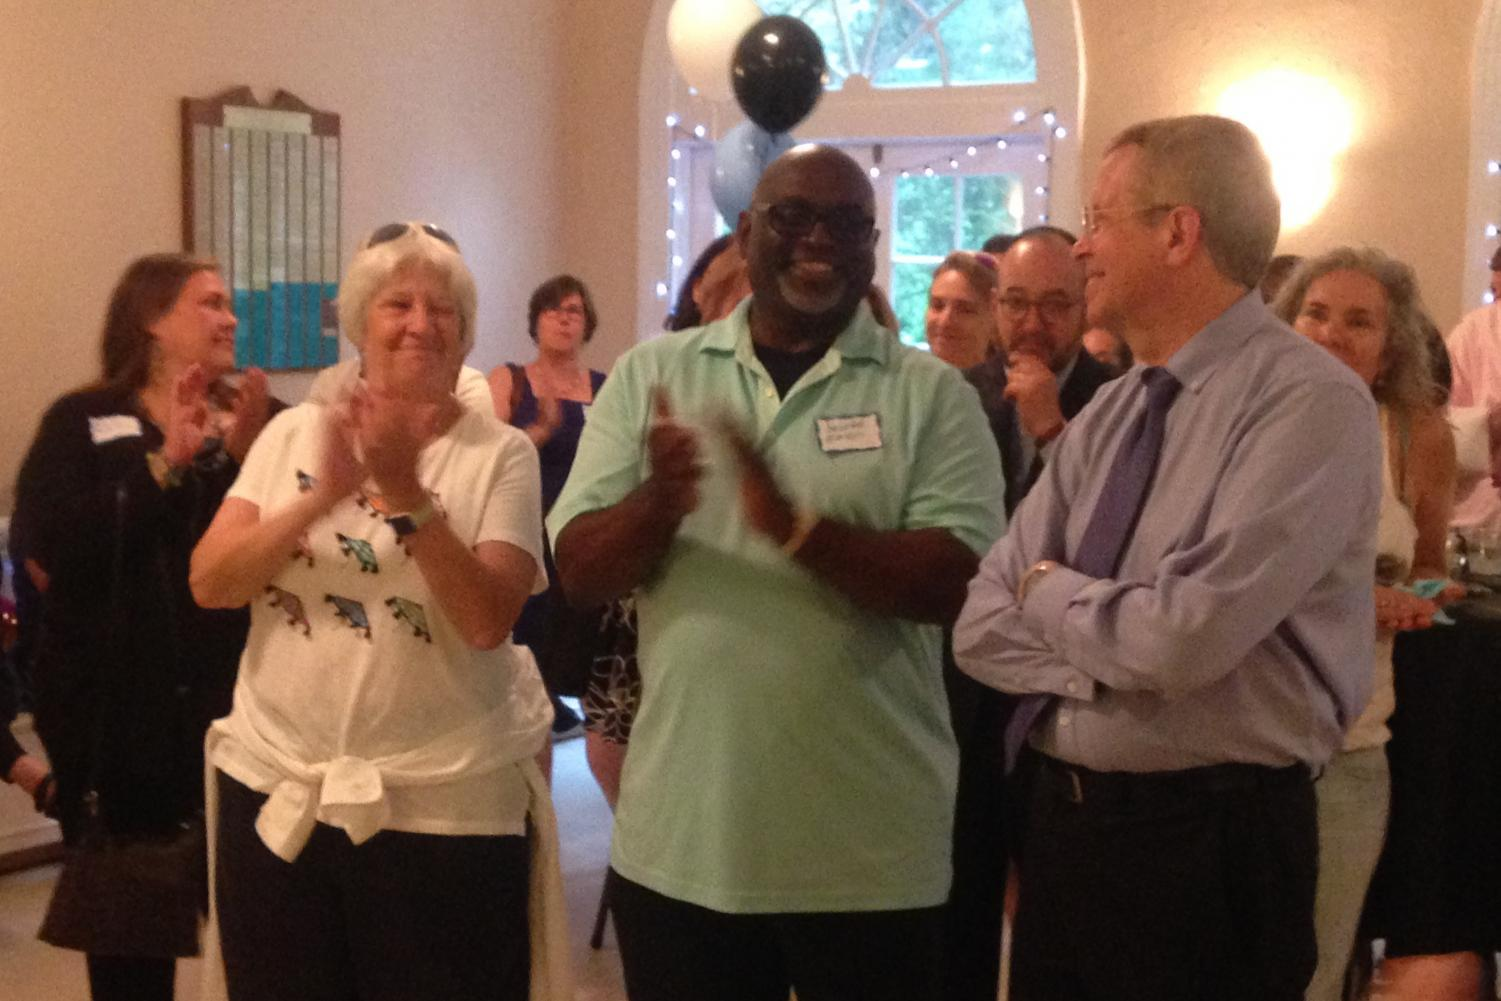 Departing principal Alan Goodwin and departing assistant principals Kathy McHale and Jerome Easton enjoy their retirement party, held by the PTSA June 13. The event was open to staff members, parents and former students. Photo by Pam Toole.